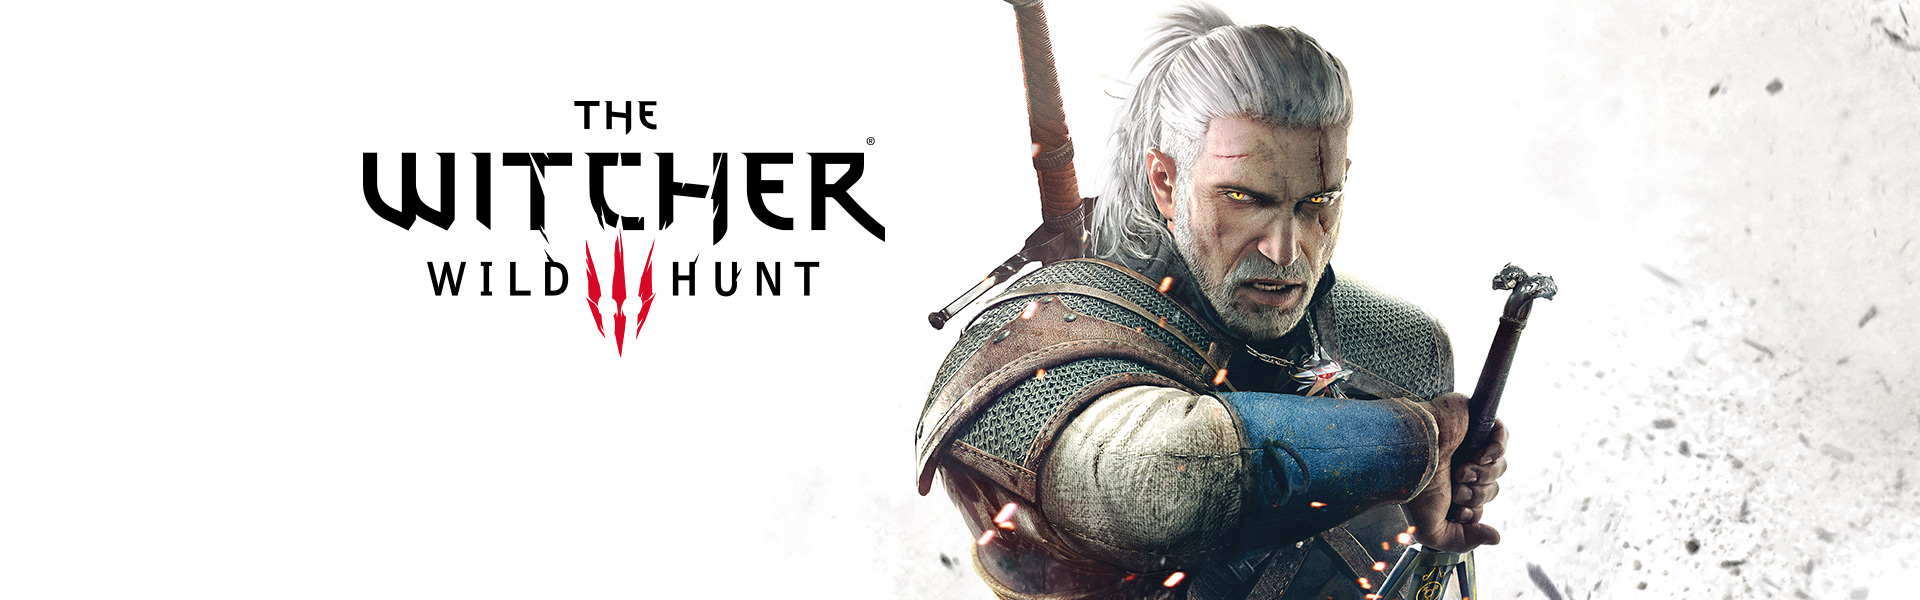 The Witcher 3 Wild Hunt, vue de Geralt dégainant son épée